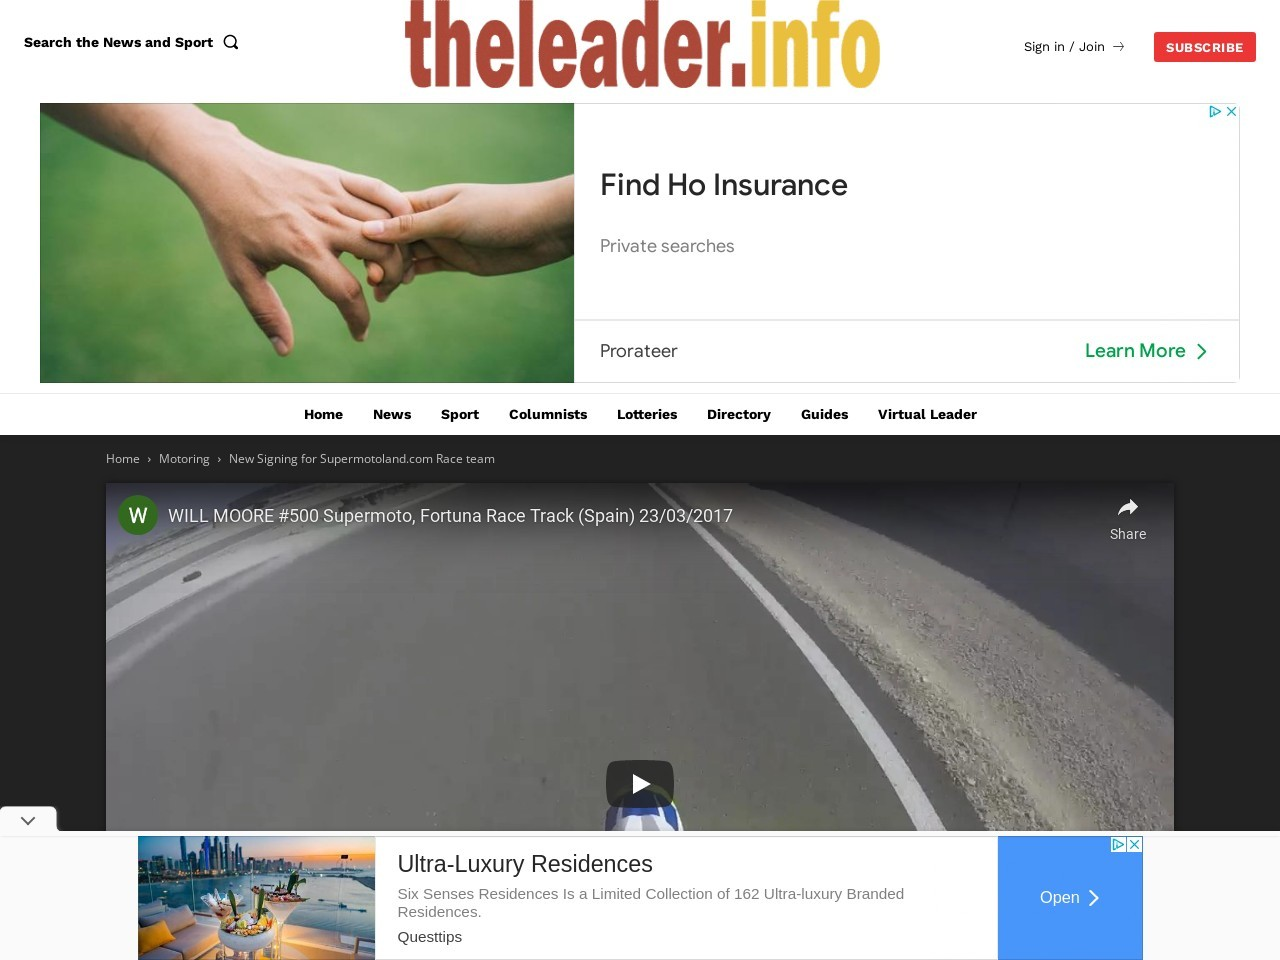 New Signing for Supermotoland.com Race team